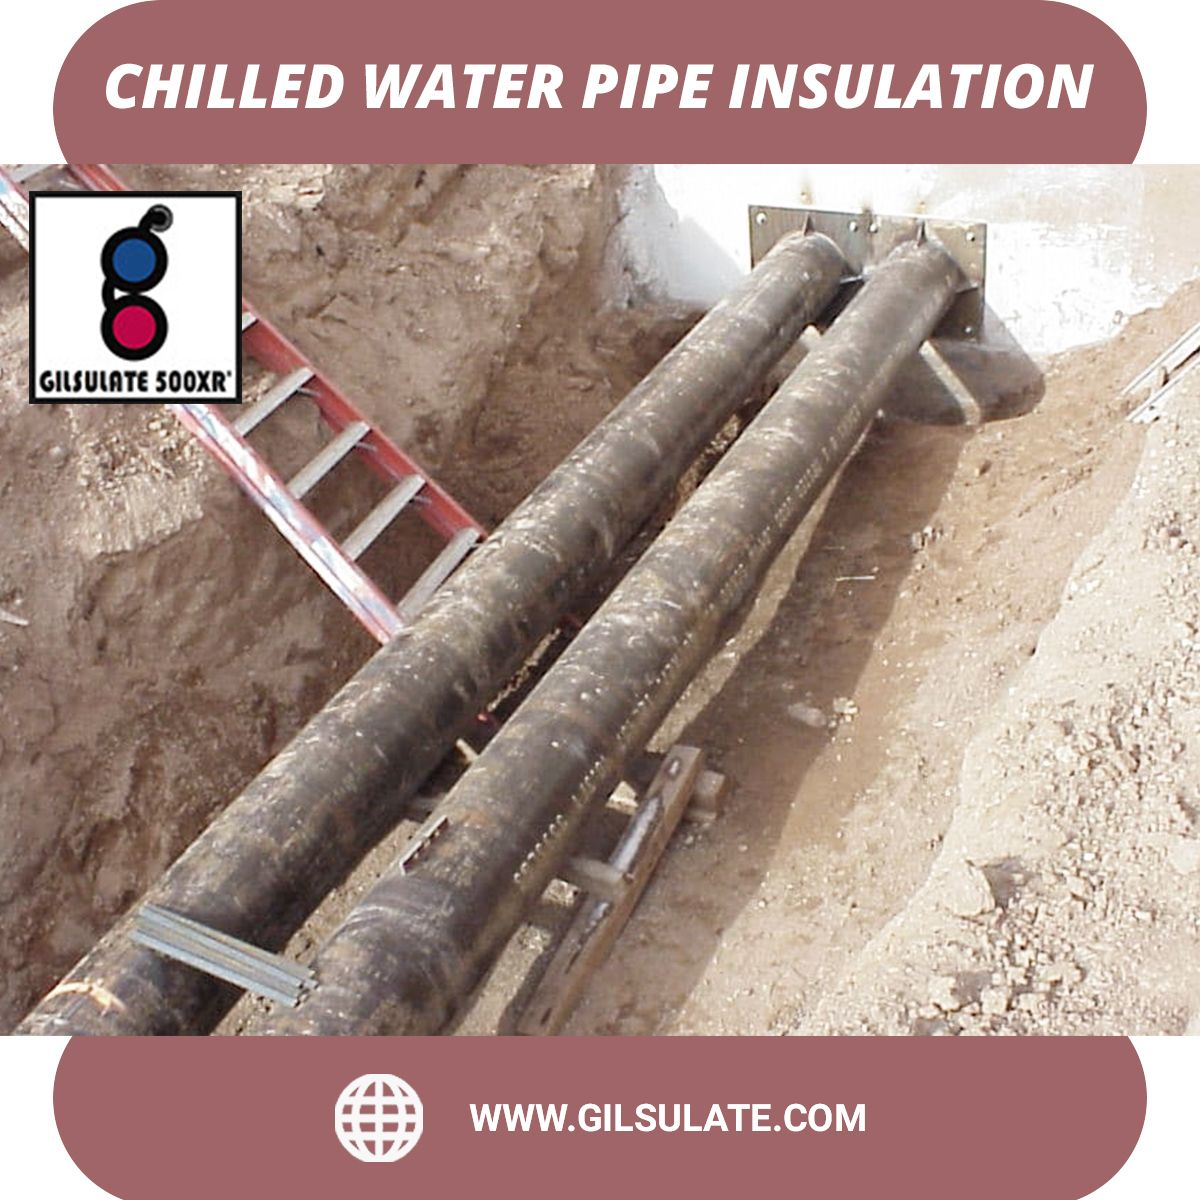 Pin On Chilled Water Pipe Insulation